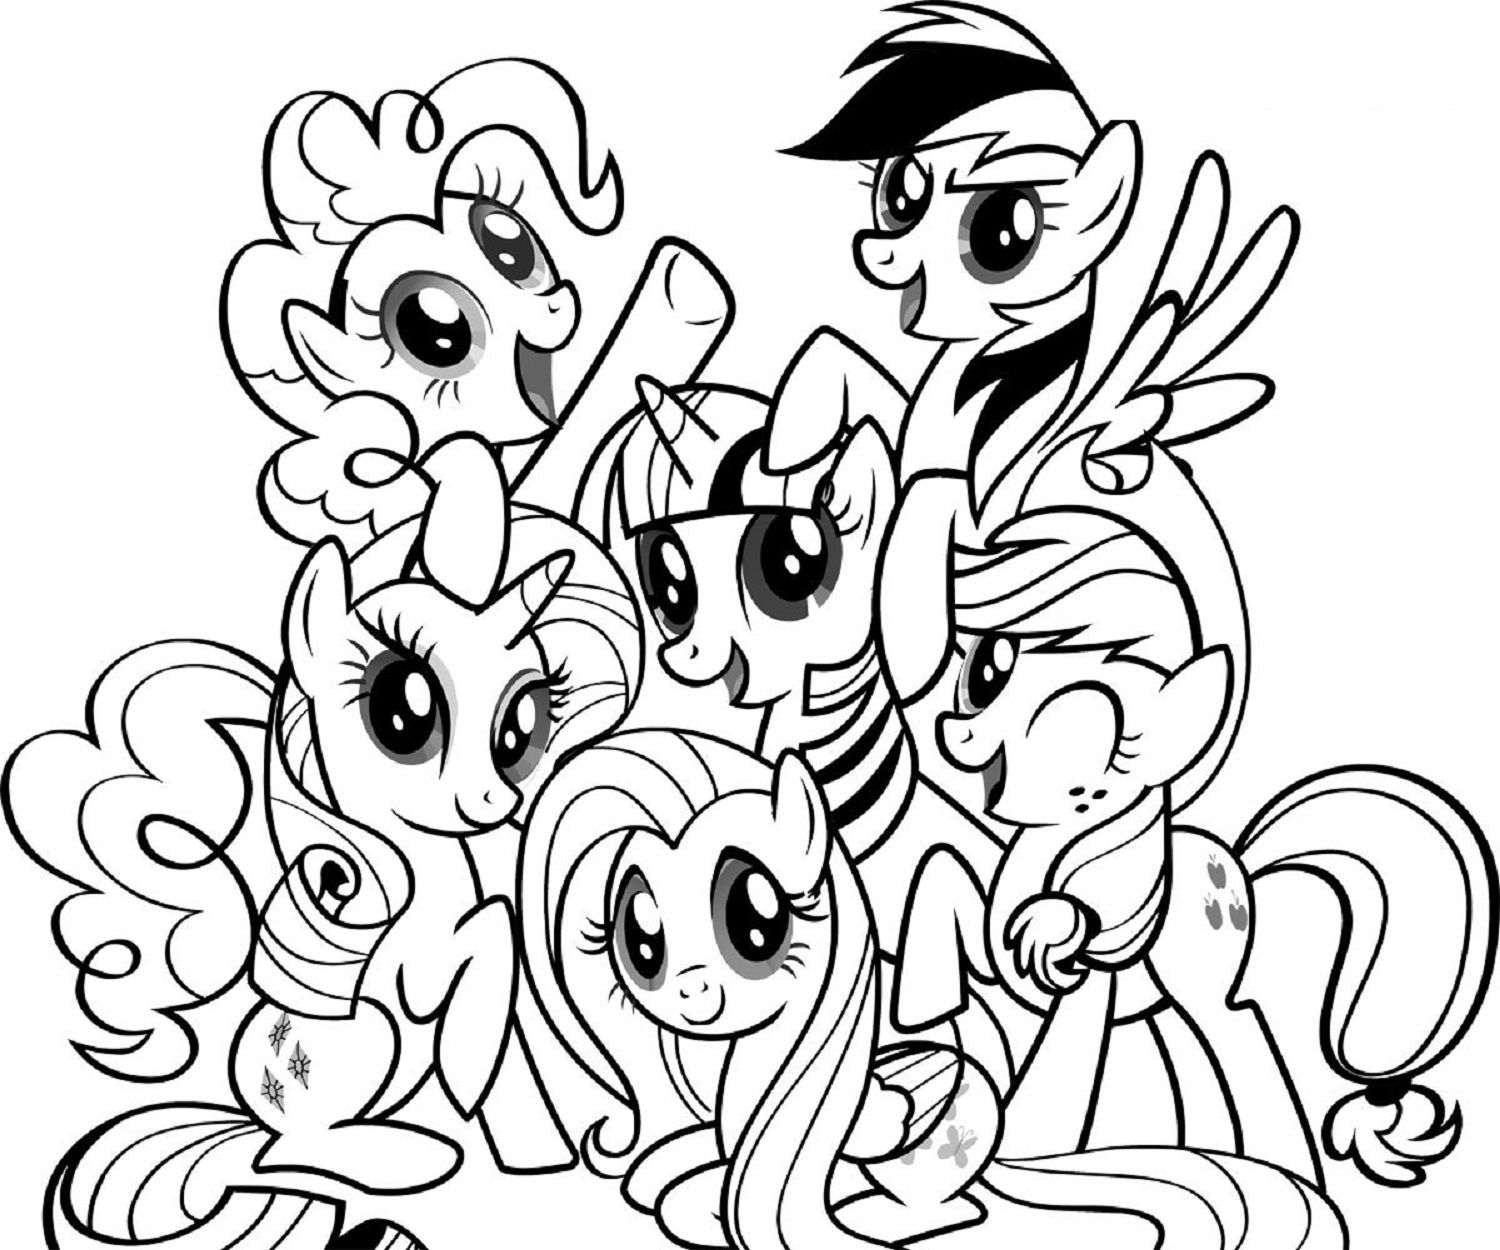 1500x1250 My Little Pony Coloring Pages With Friends Kids Activity